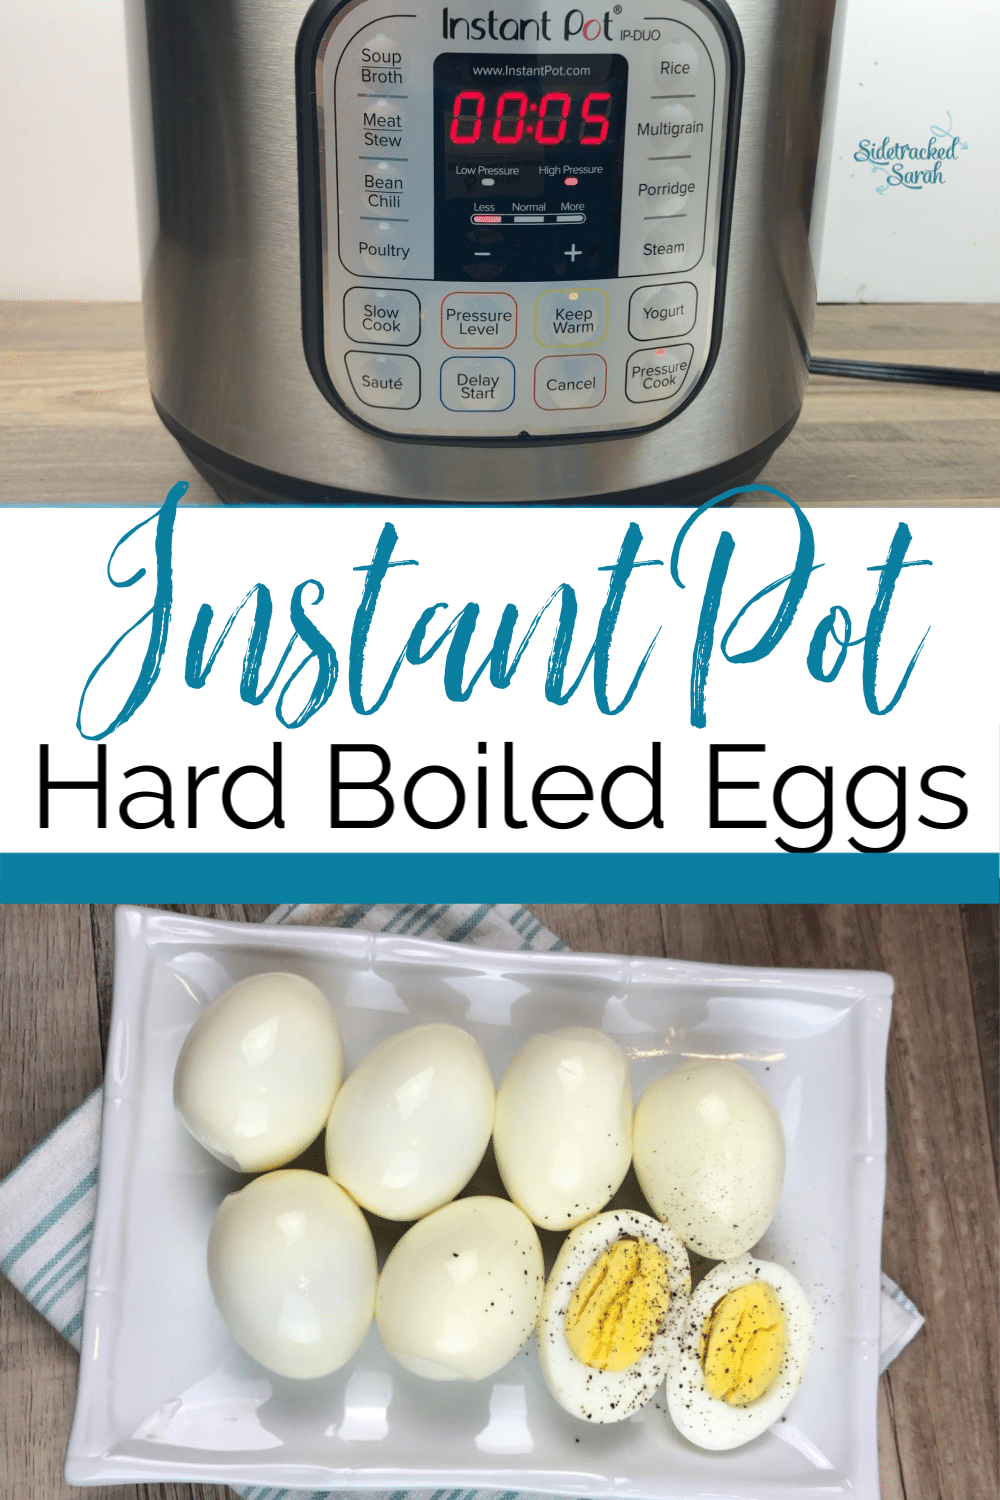 Instant Pot Hard Boiled Eggs on Plate